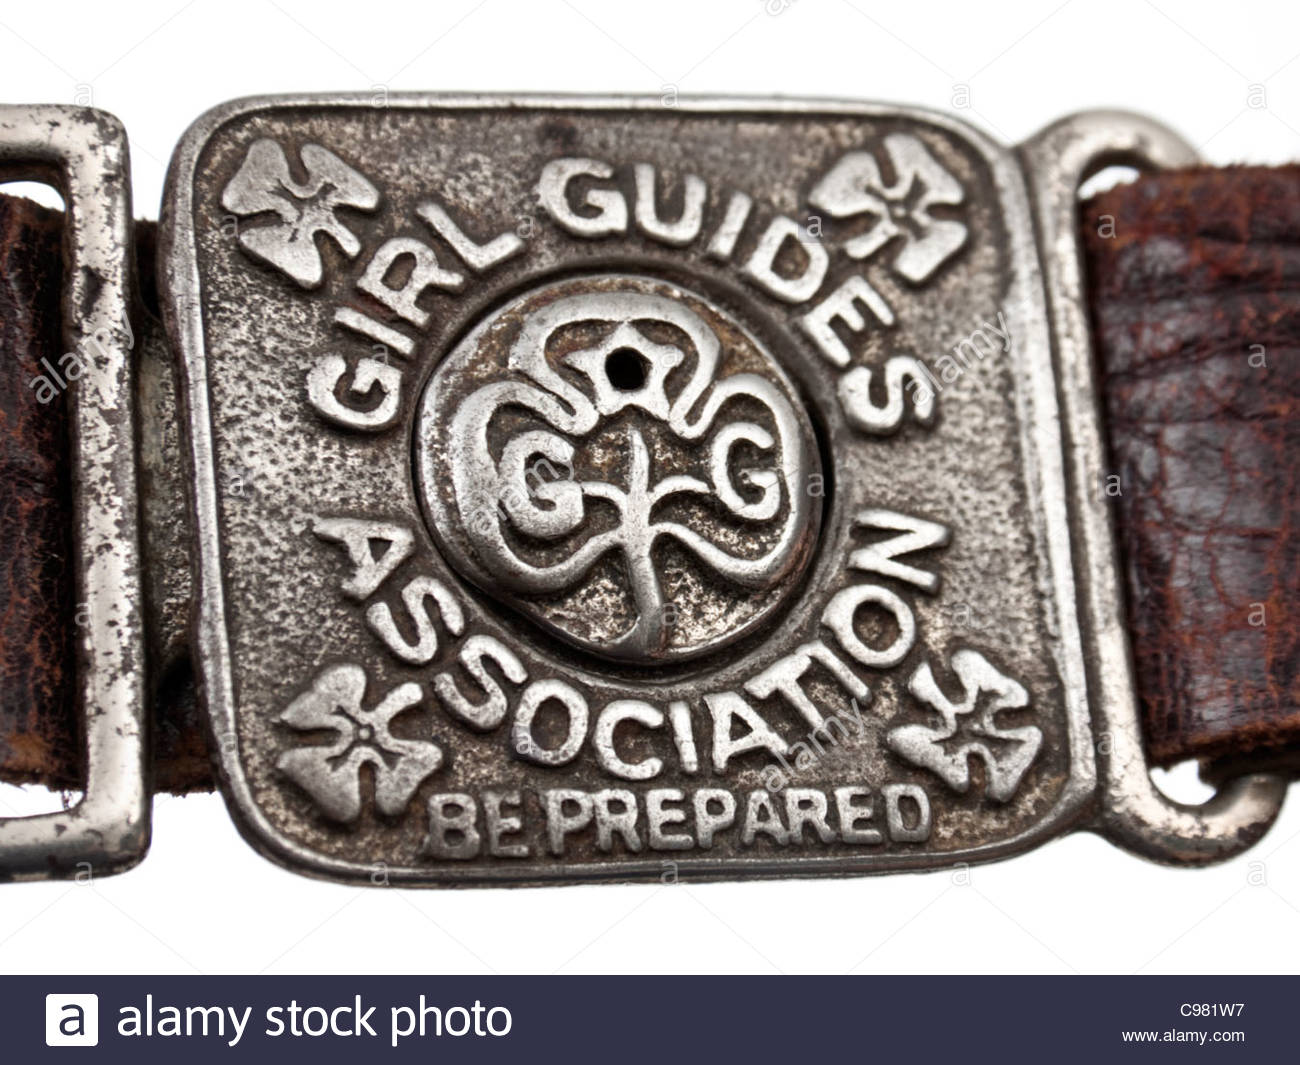 Vintage Girl Guides Association leather belt with buckle showing their motto 'Be Prepared' - Stock Image